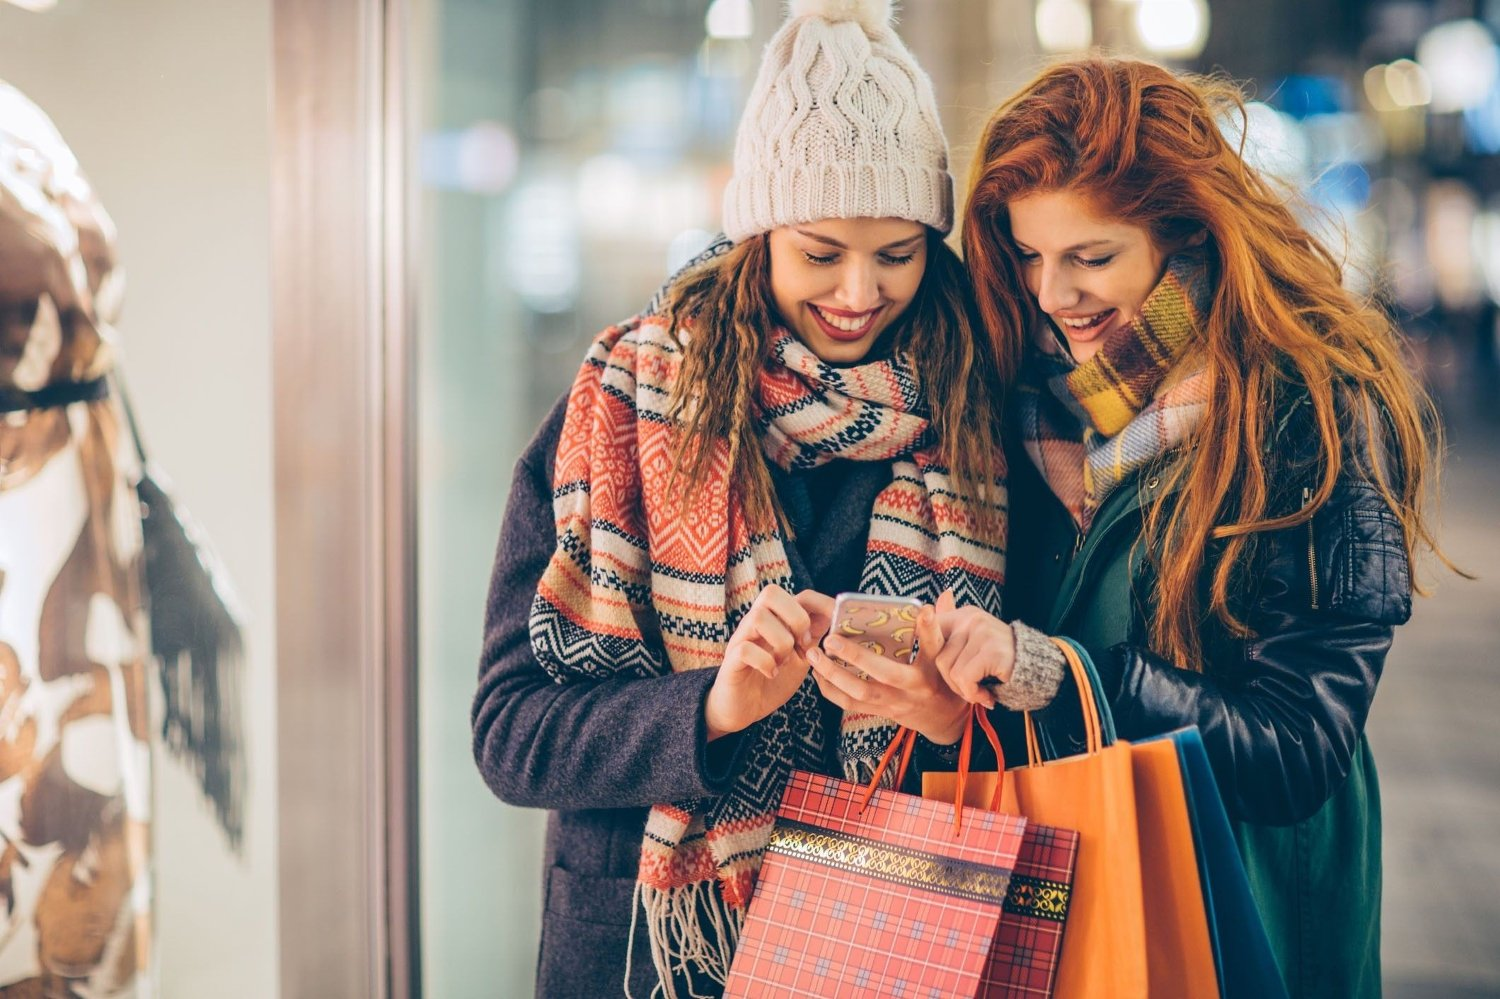 Ready to tackle the next sale Friends walking on city street by night. Checking smart phone to see which shops thay pick. Holding shopping bags. Wearing warm clothing.